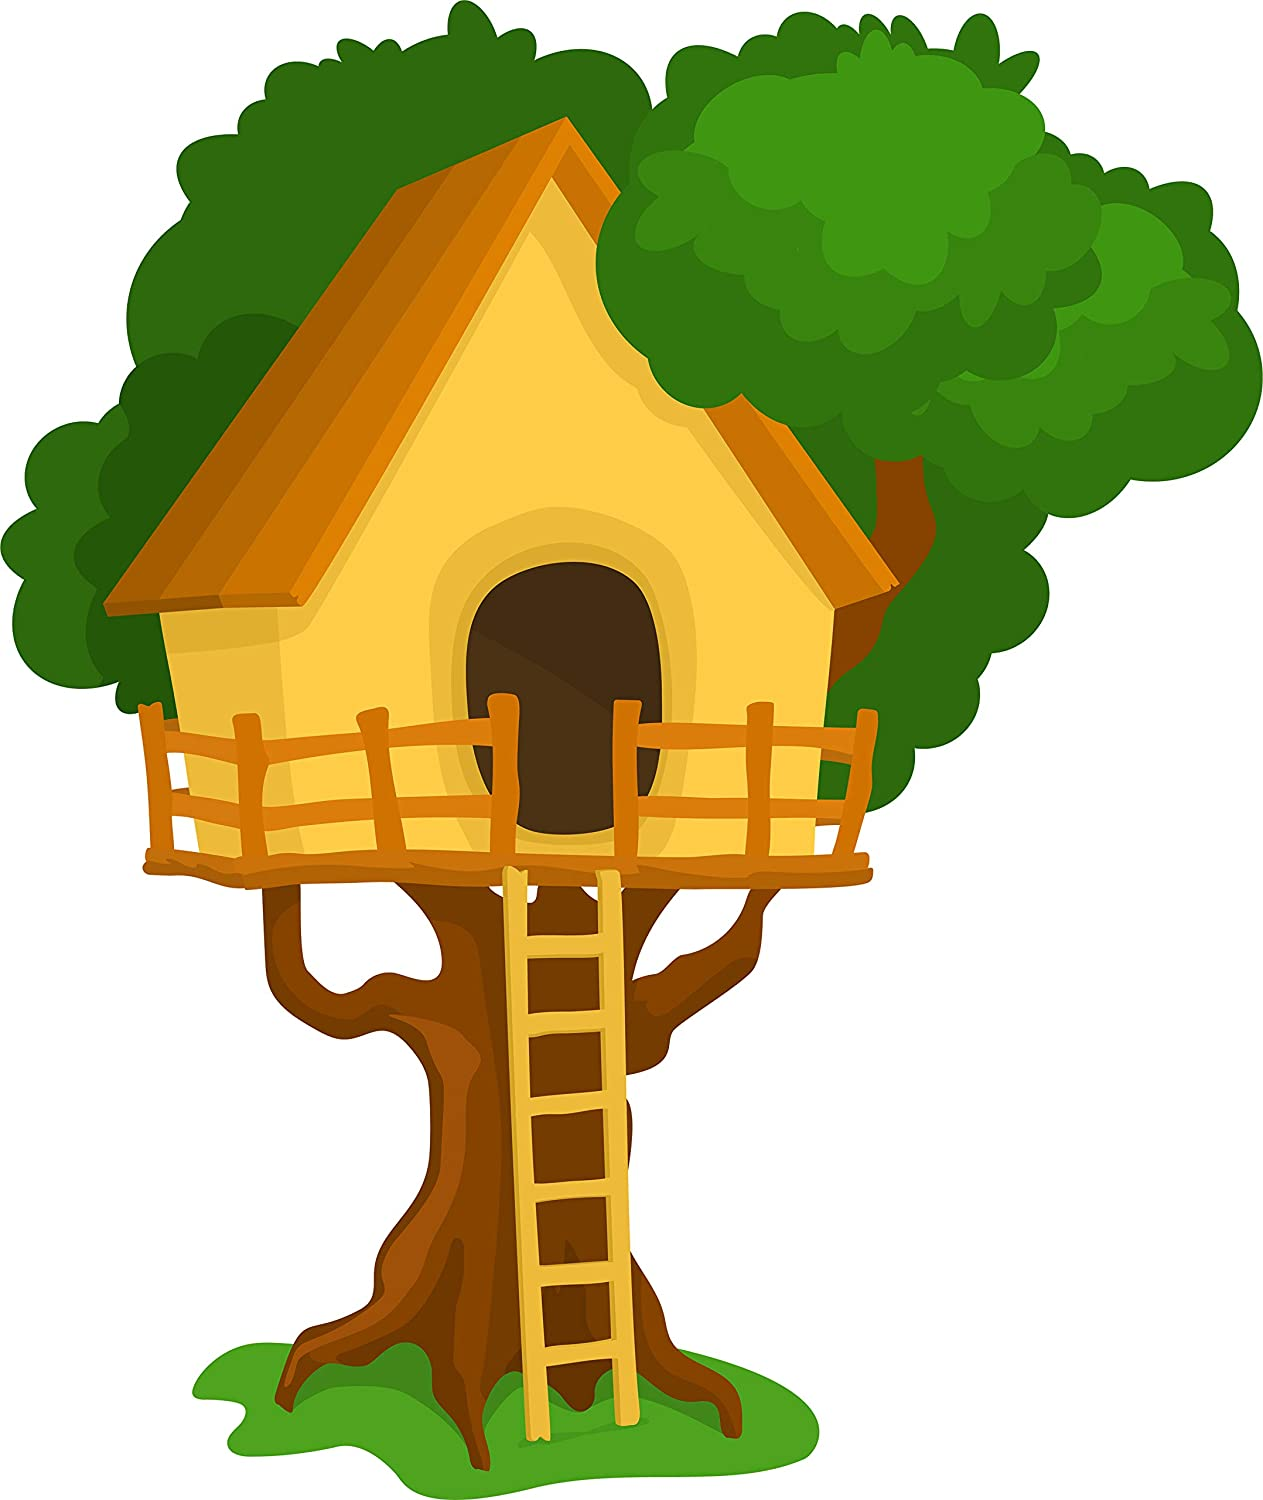 Amazon Com Cute Childhood Treehouse Cartoon Art Vinyl Sticker Bird House Automotive What sick person would chop your mom not pieces and make you wear her? cute childhood treehouse cartoon